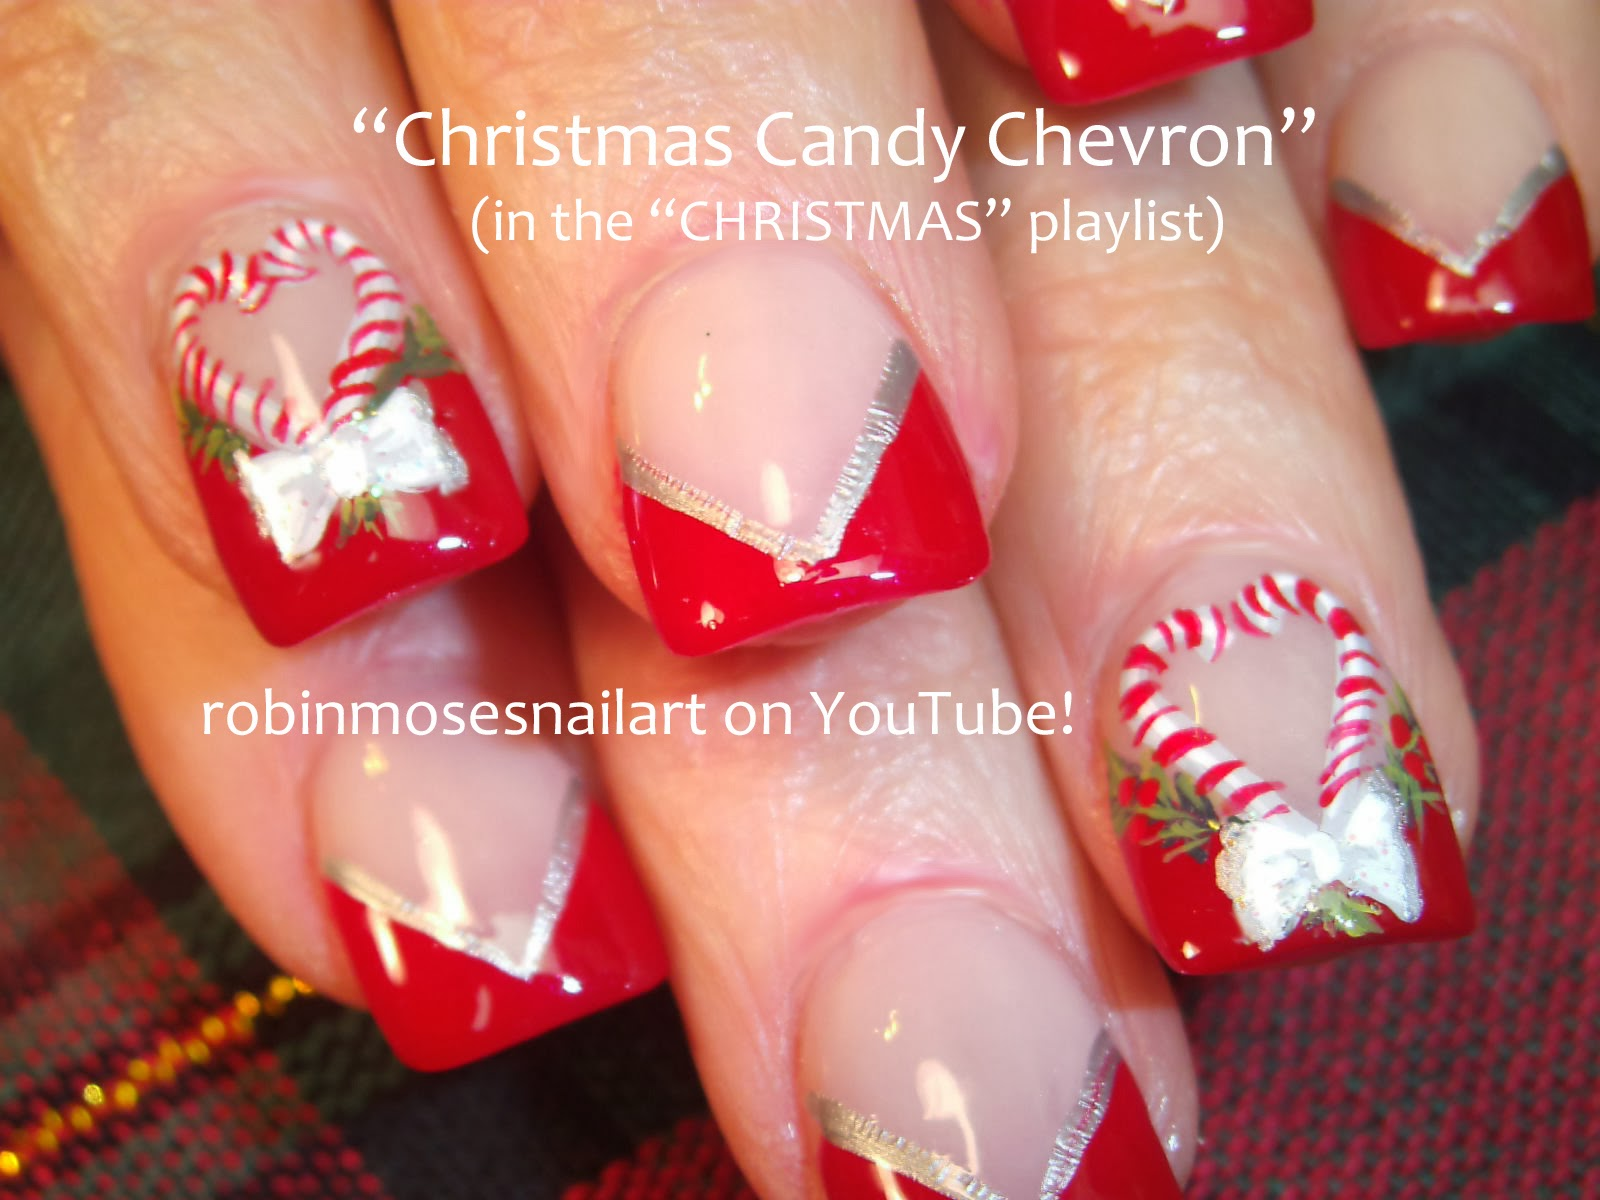 Christmas french nail art designs christmas french nail art designs funky french tip nails on pinterest nail art galleries prinsesfo Image collections